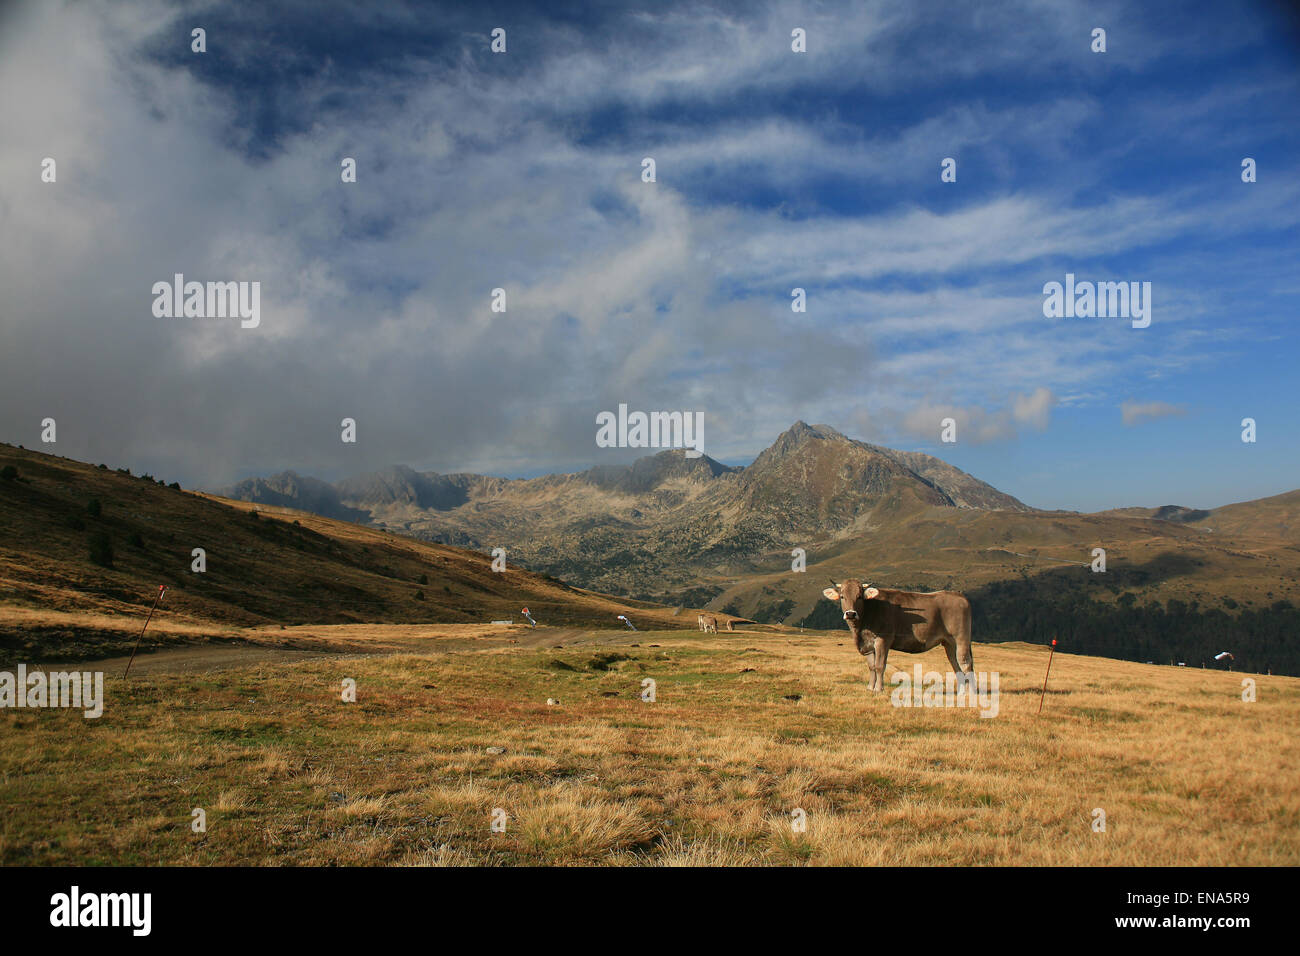 Pyrenees mountains on the France Spain border near Andorra with cow grazing in the high alpine pastures. Stock Photo